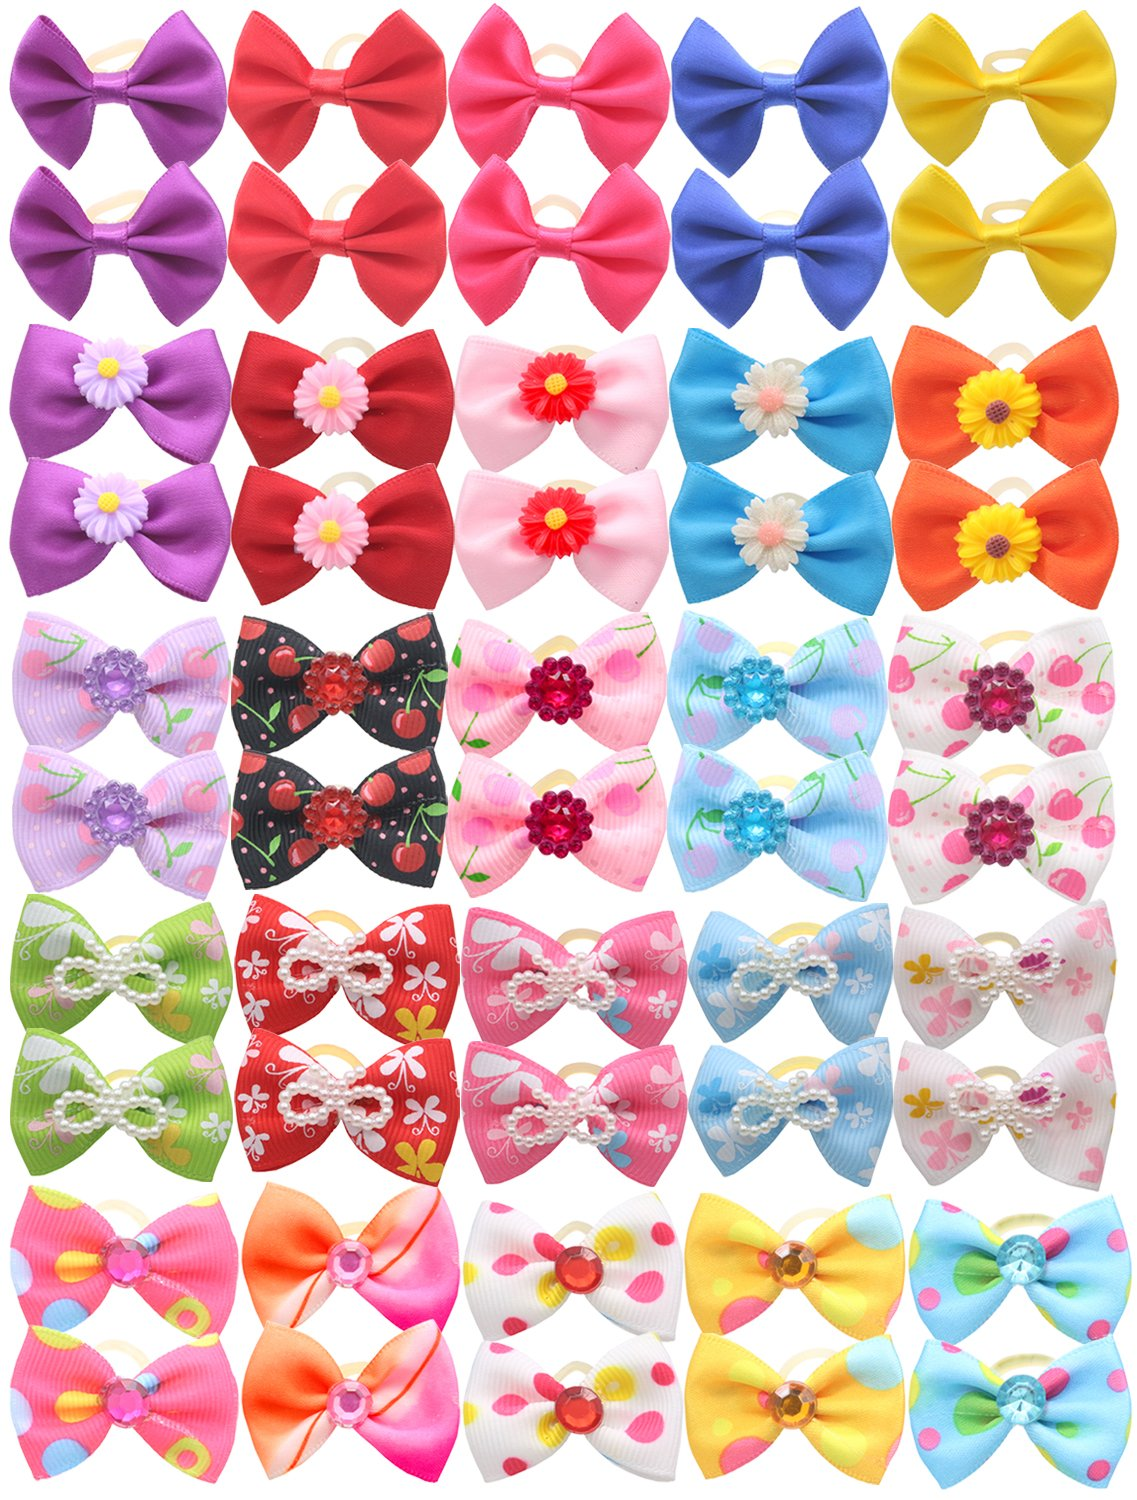 YOY 50pcs/25 Pairs Adorable Grosgrain Ribbon Pet Dog Hair Bows with Rubber Bands - Puppy Topknot Cat Kitty Doggy Grooming Hair Accessories Bow knots Headdress Flowers Set for Groomer